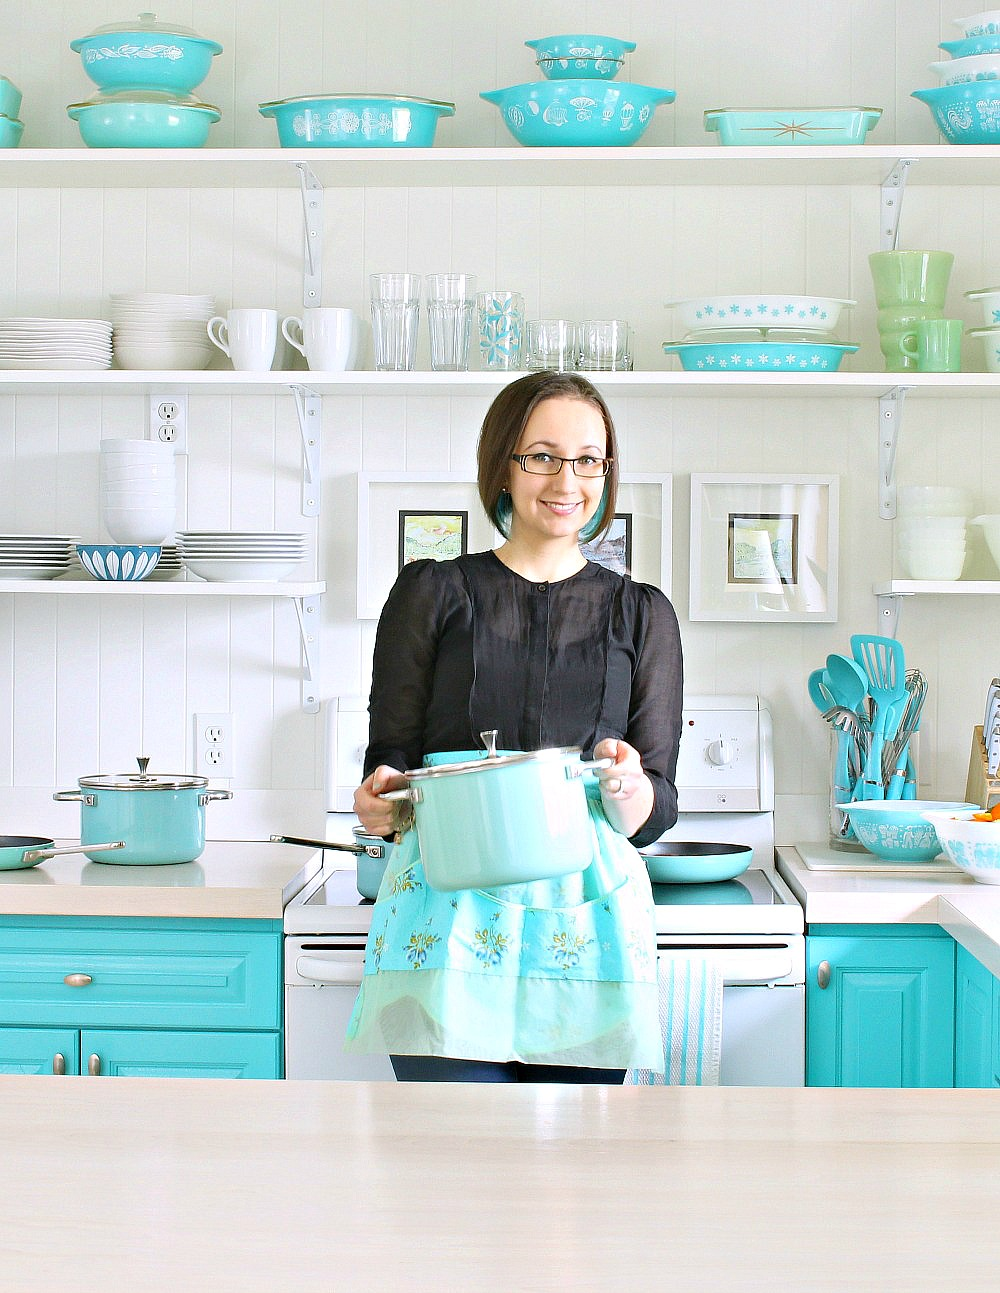 Turquoise Kitchen, Vintage Pyrex Collection